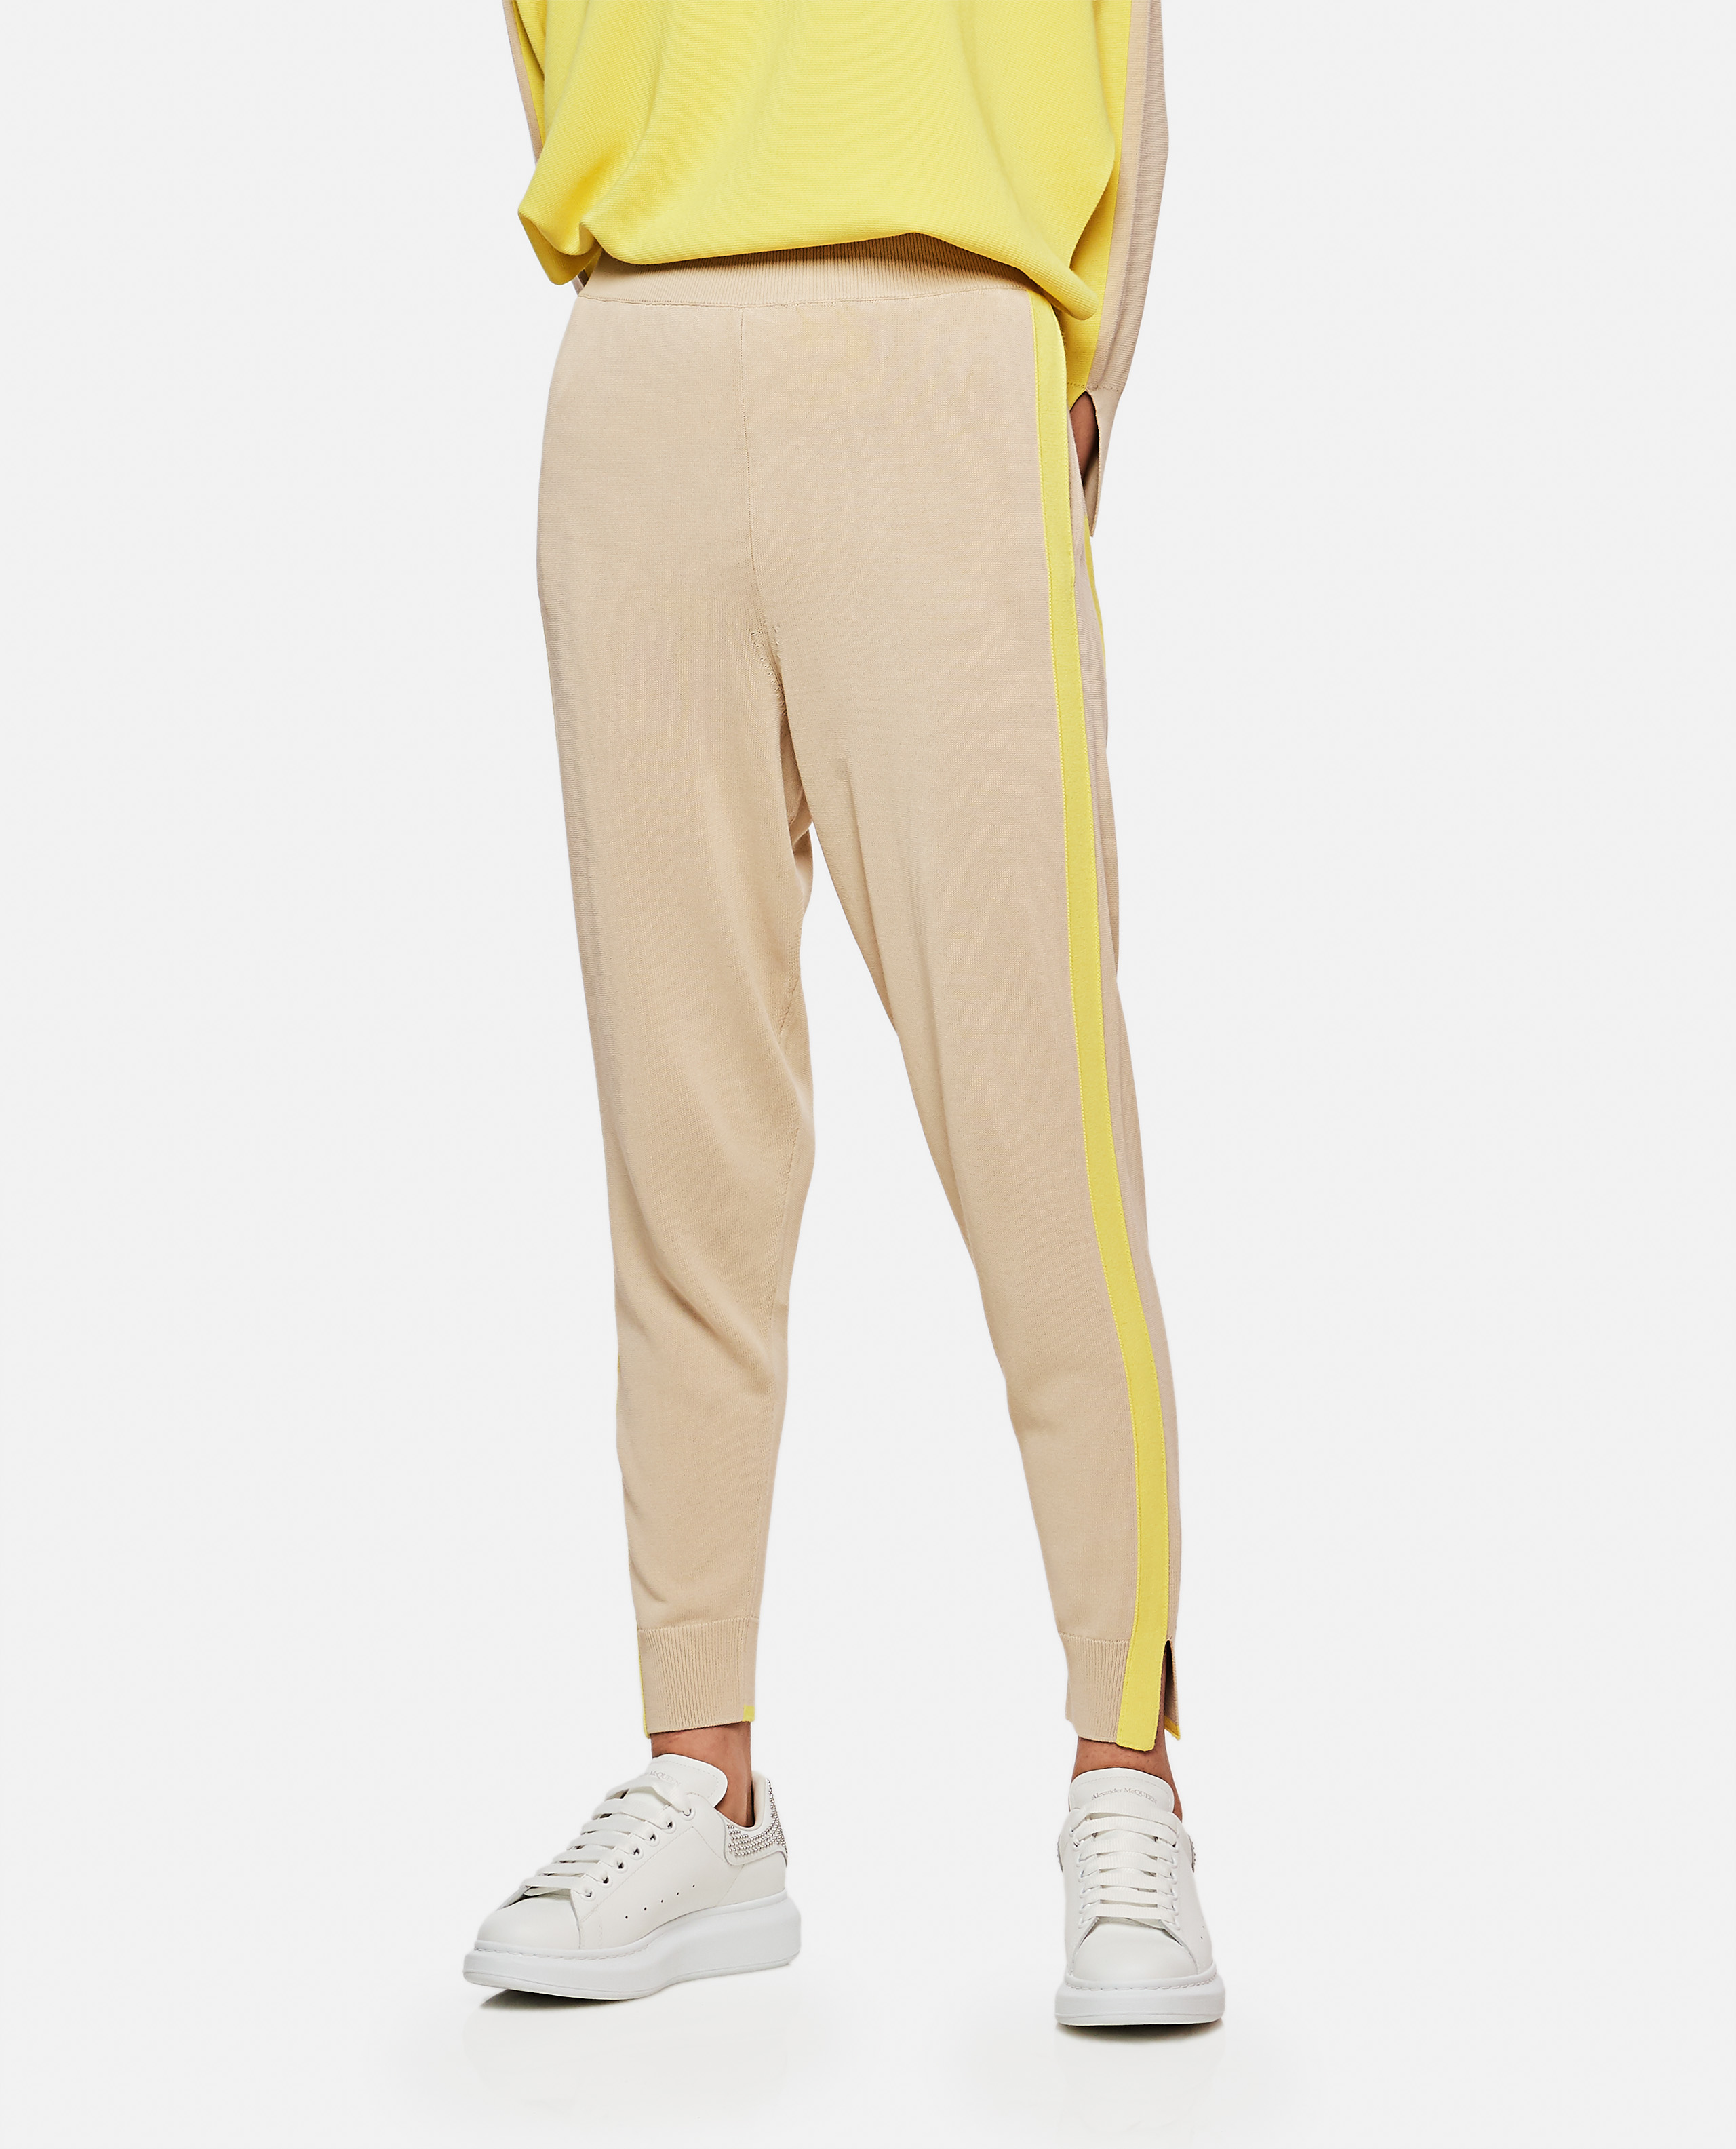 Sport trousers with side bands